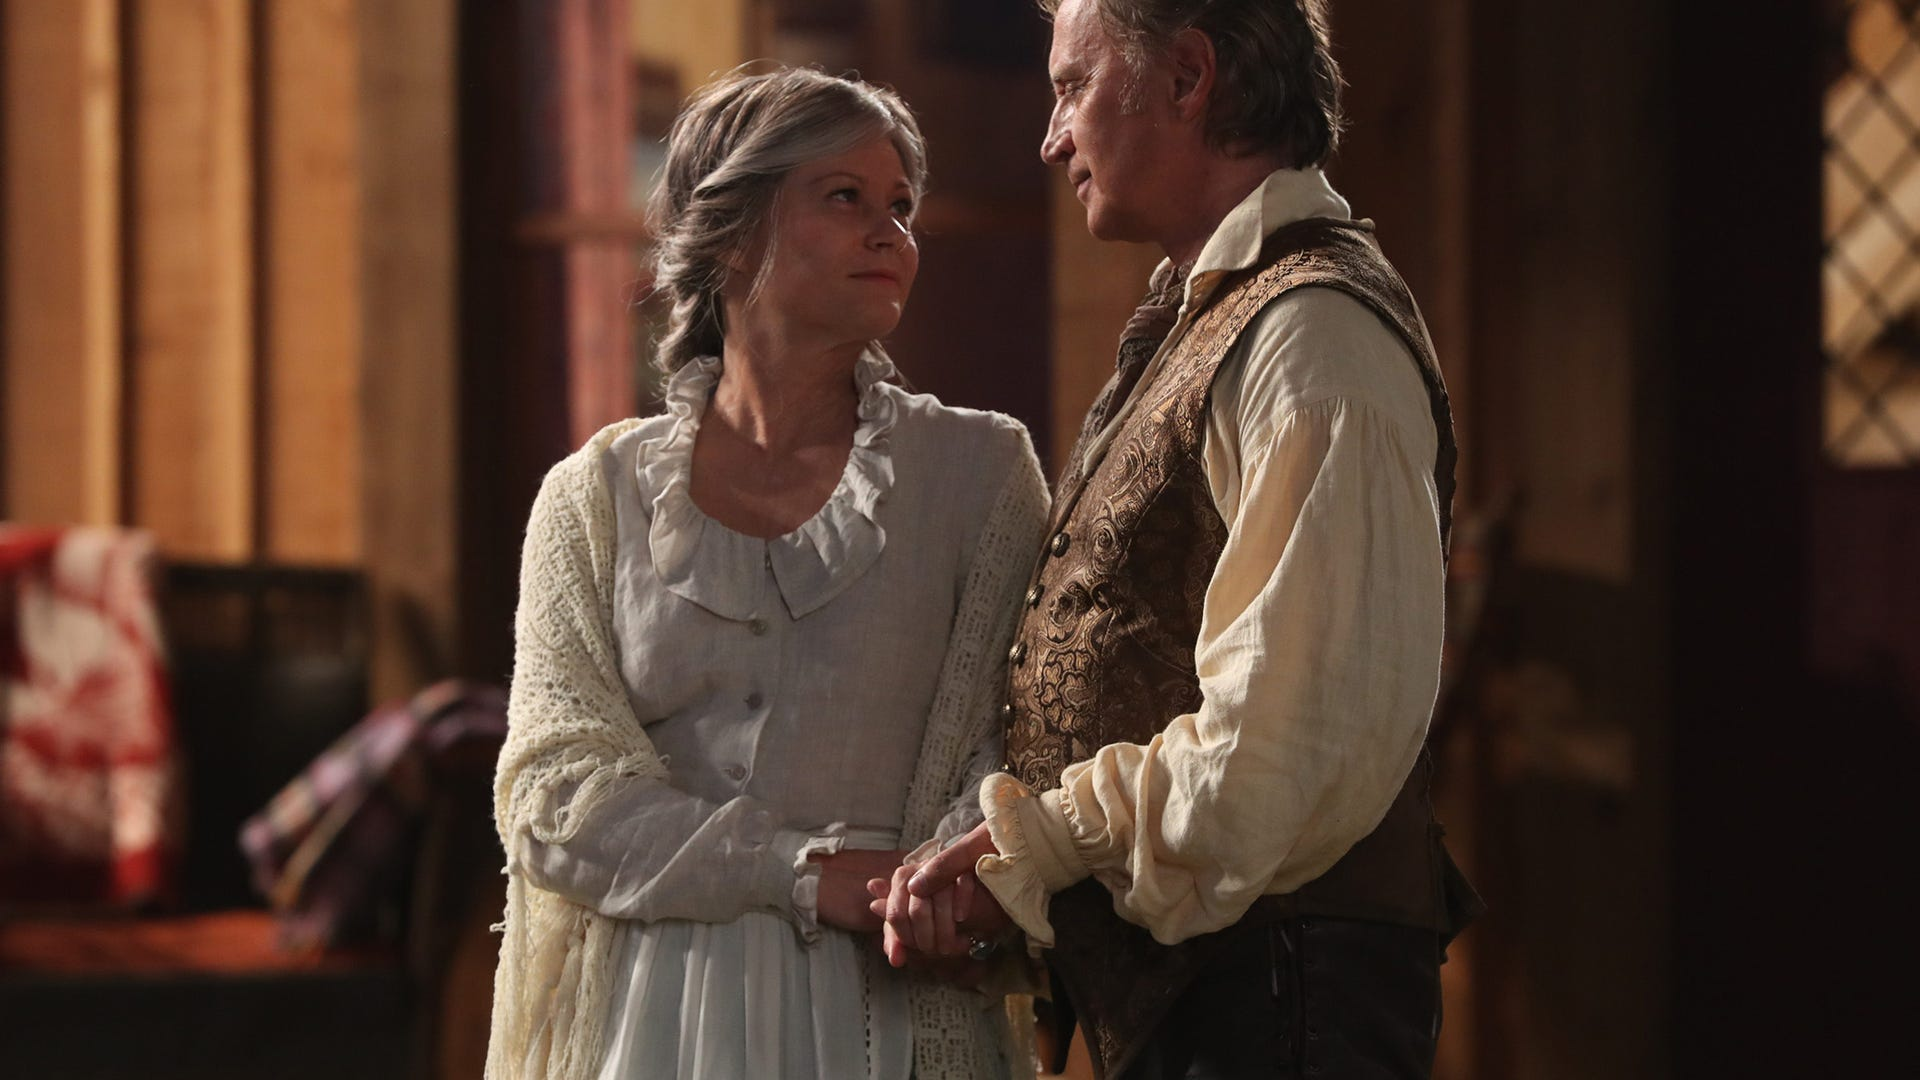 Robert Carlyle and Emilie de Ravin, Once Upon a Time